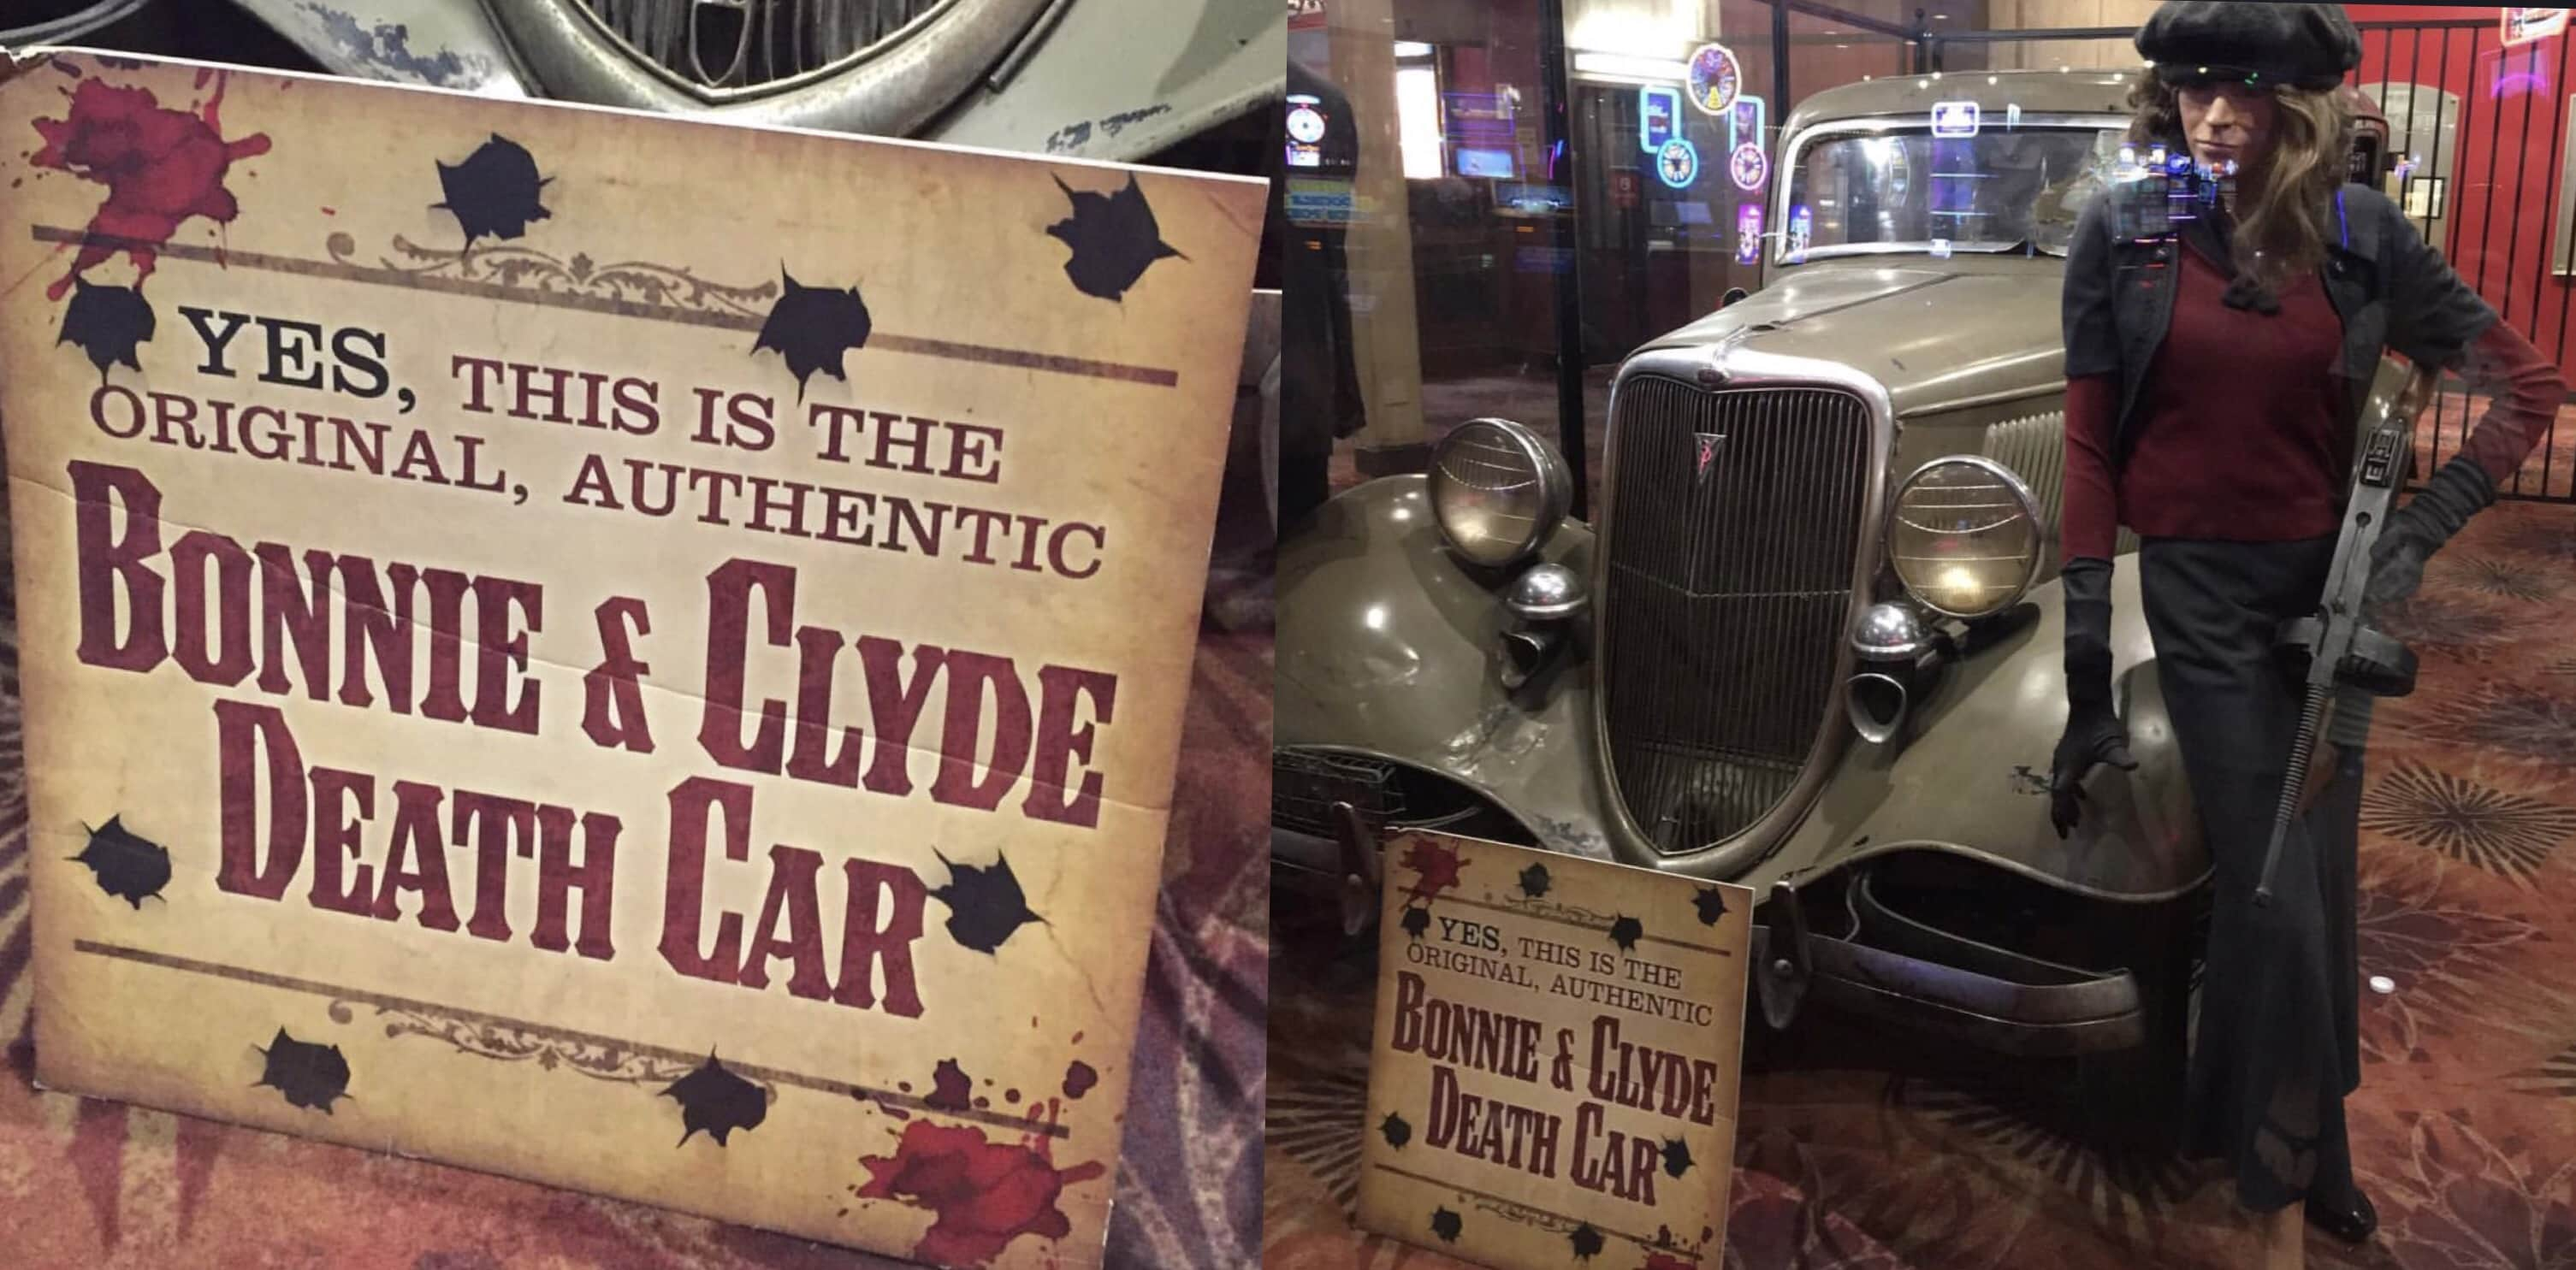 Bonnie and Clyde Car, Las Vegas Guide